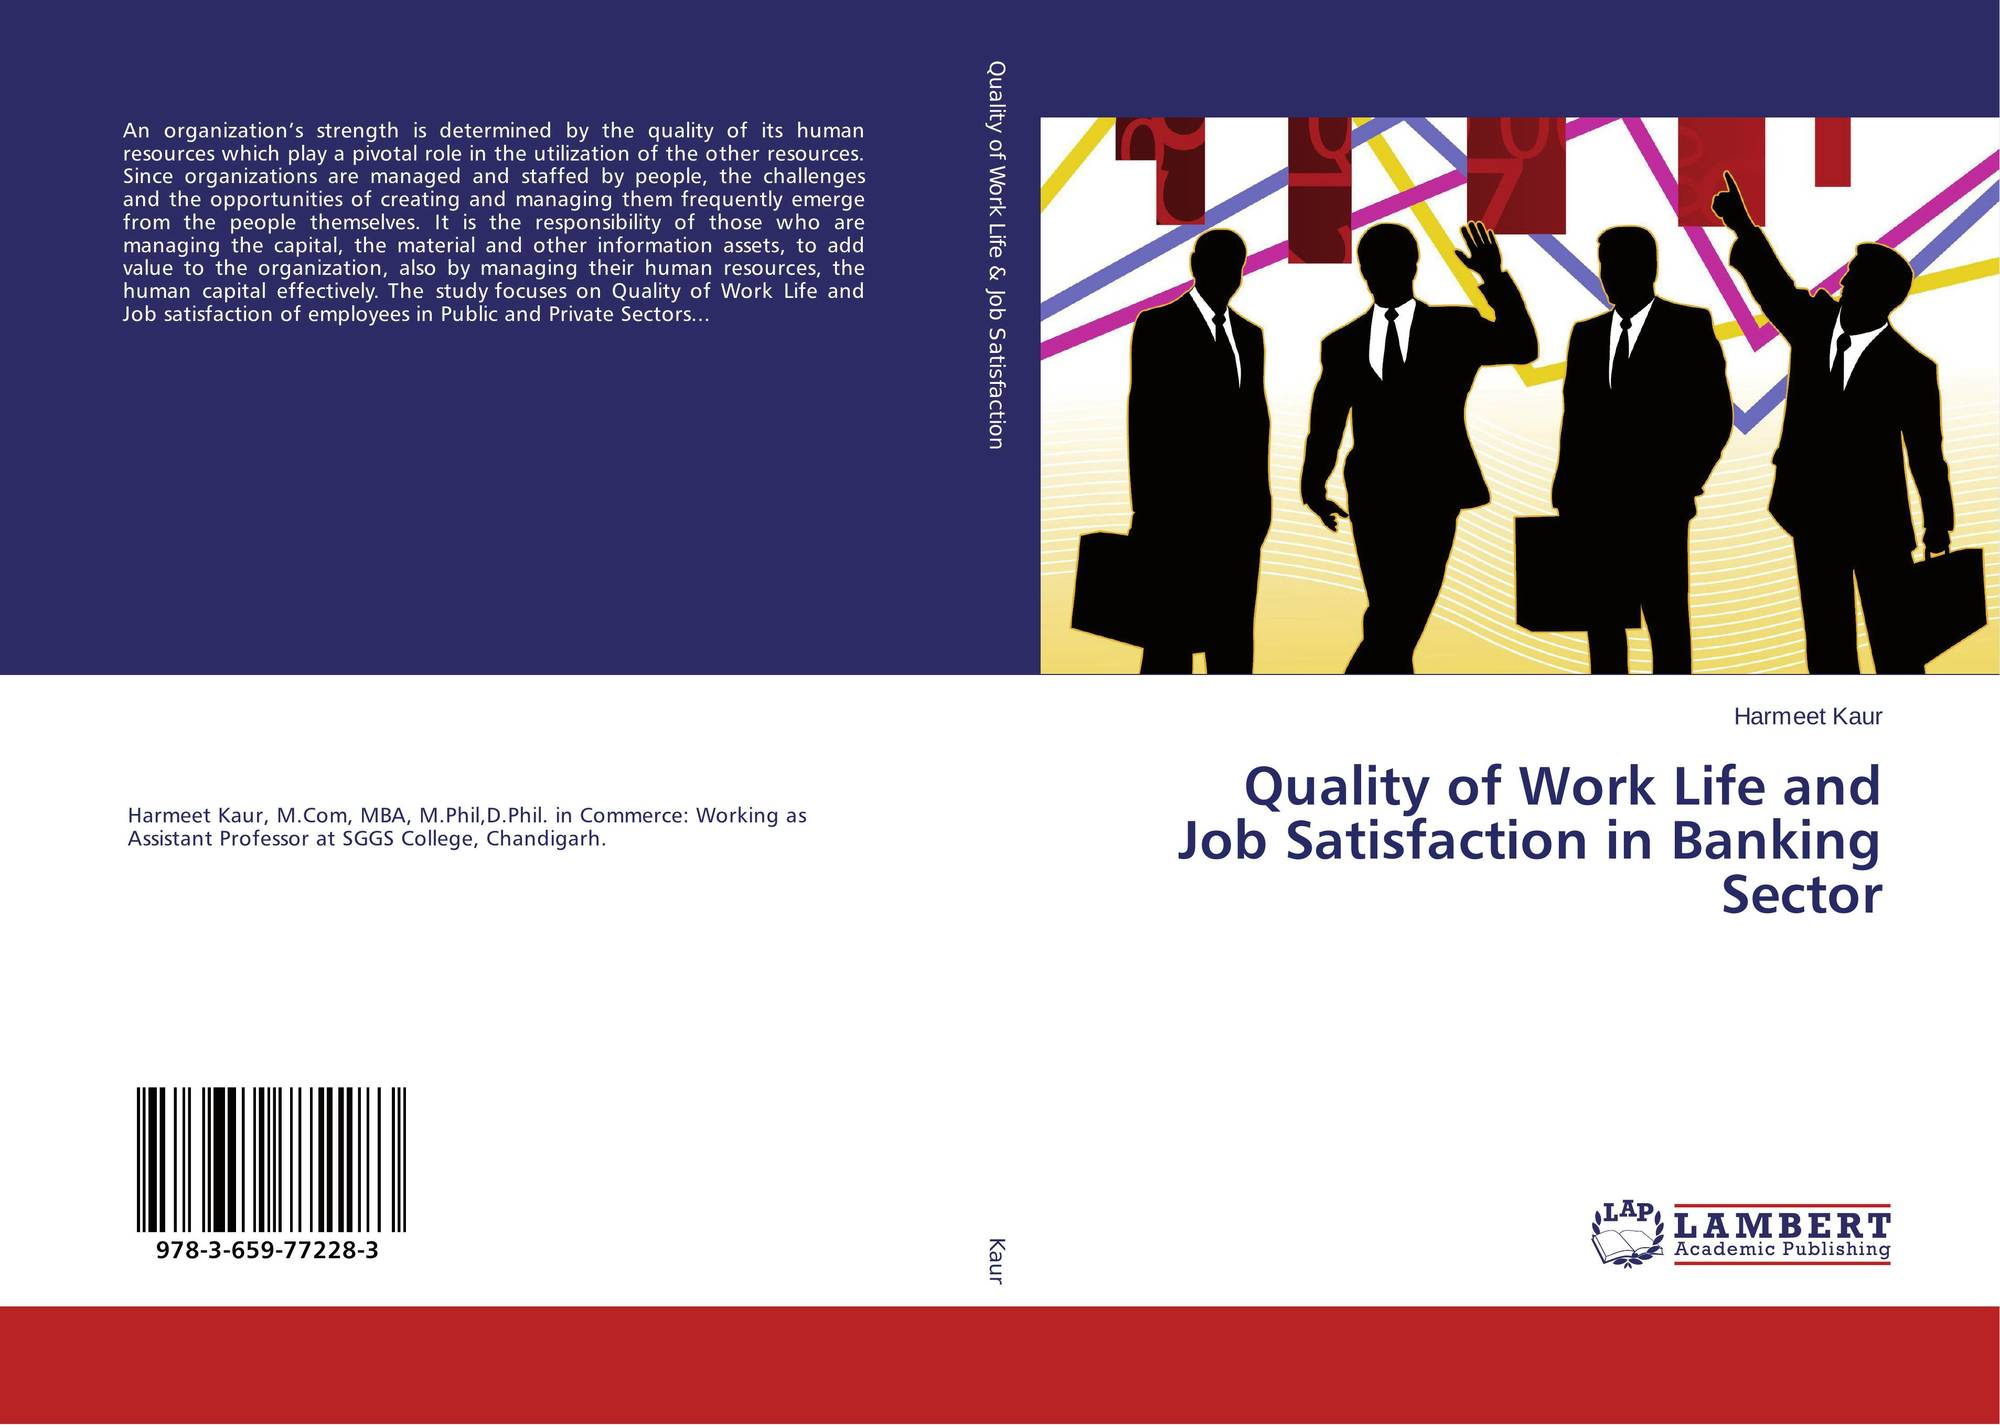 mgmt2718 quality of working life There is a thread running through this issue, and it is quality of work life  sometimes abbreviated qwl, quality of work life is a quick phrase that  encompasses.